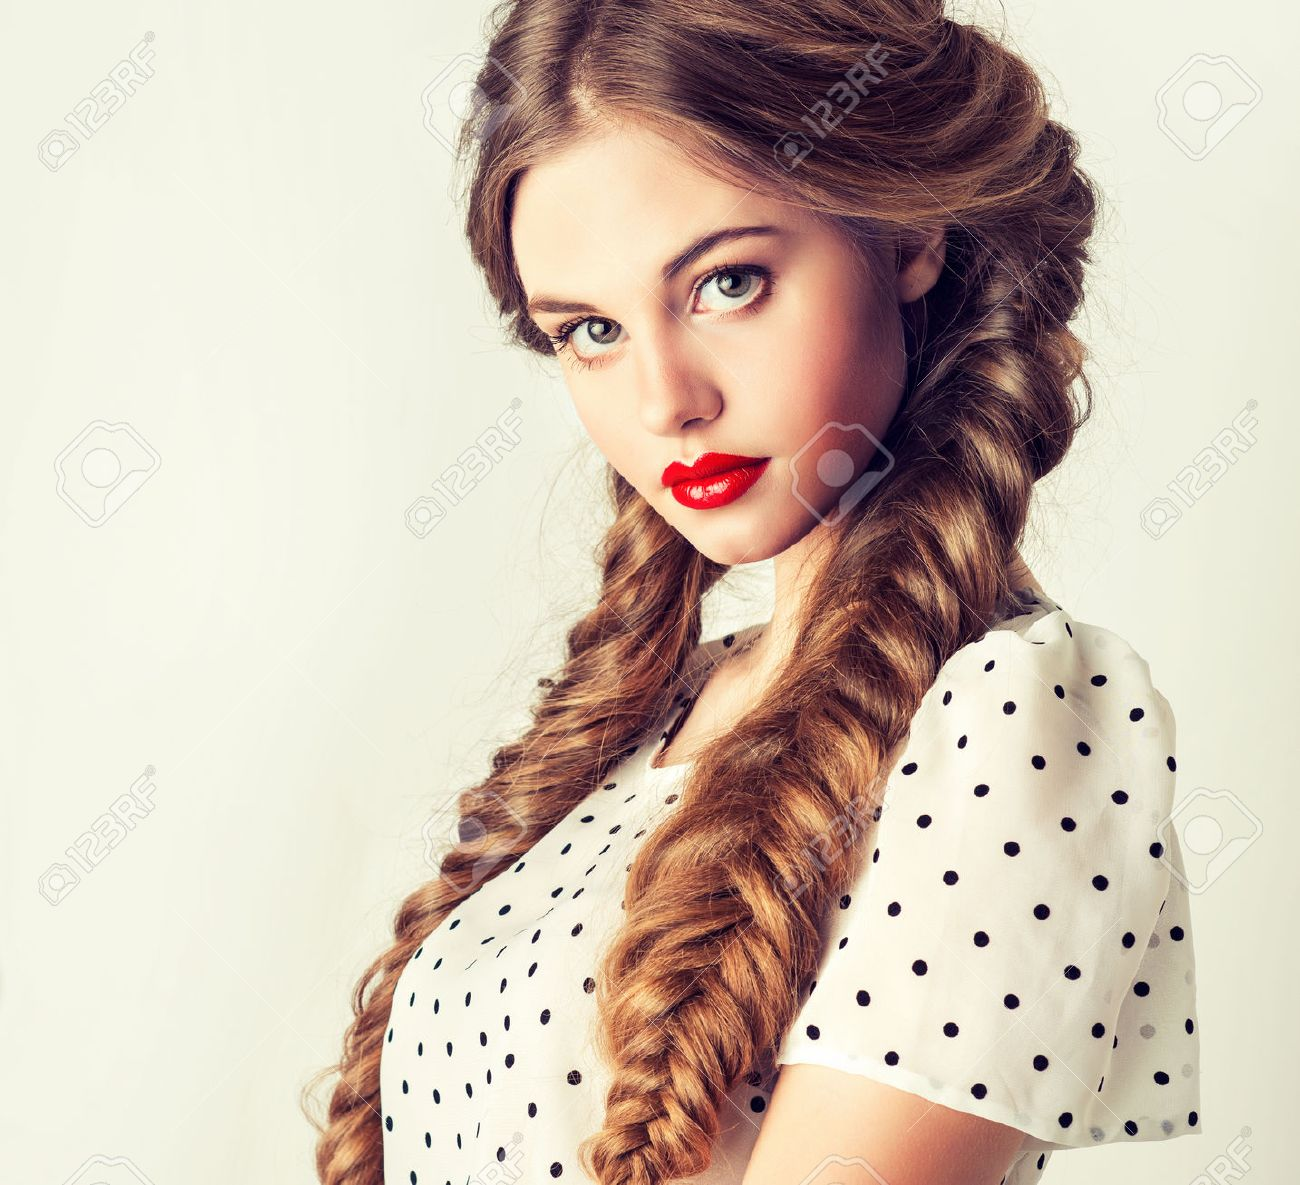 modern portrait of pretty girl with two pigtails Stock Photo - 38303771